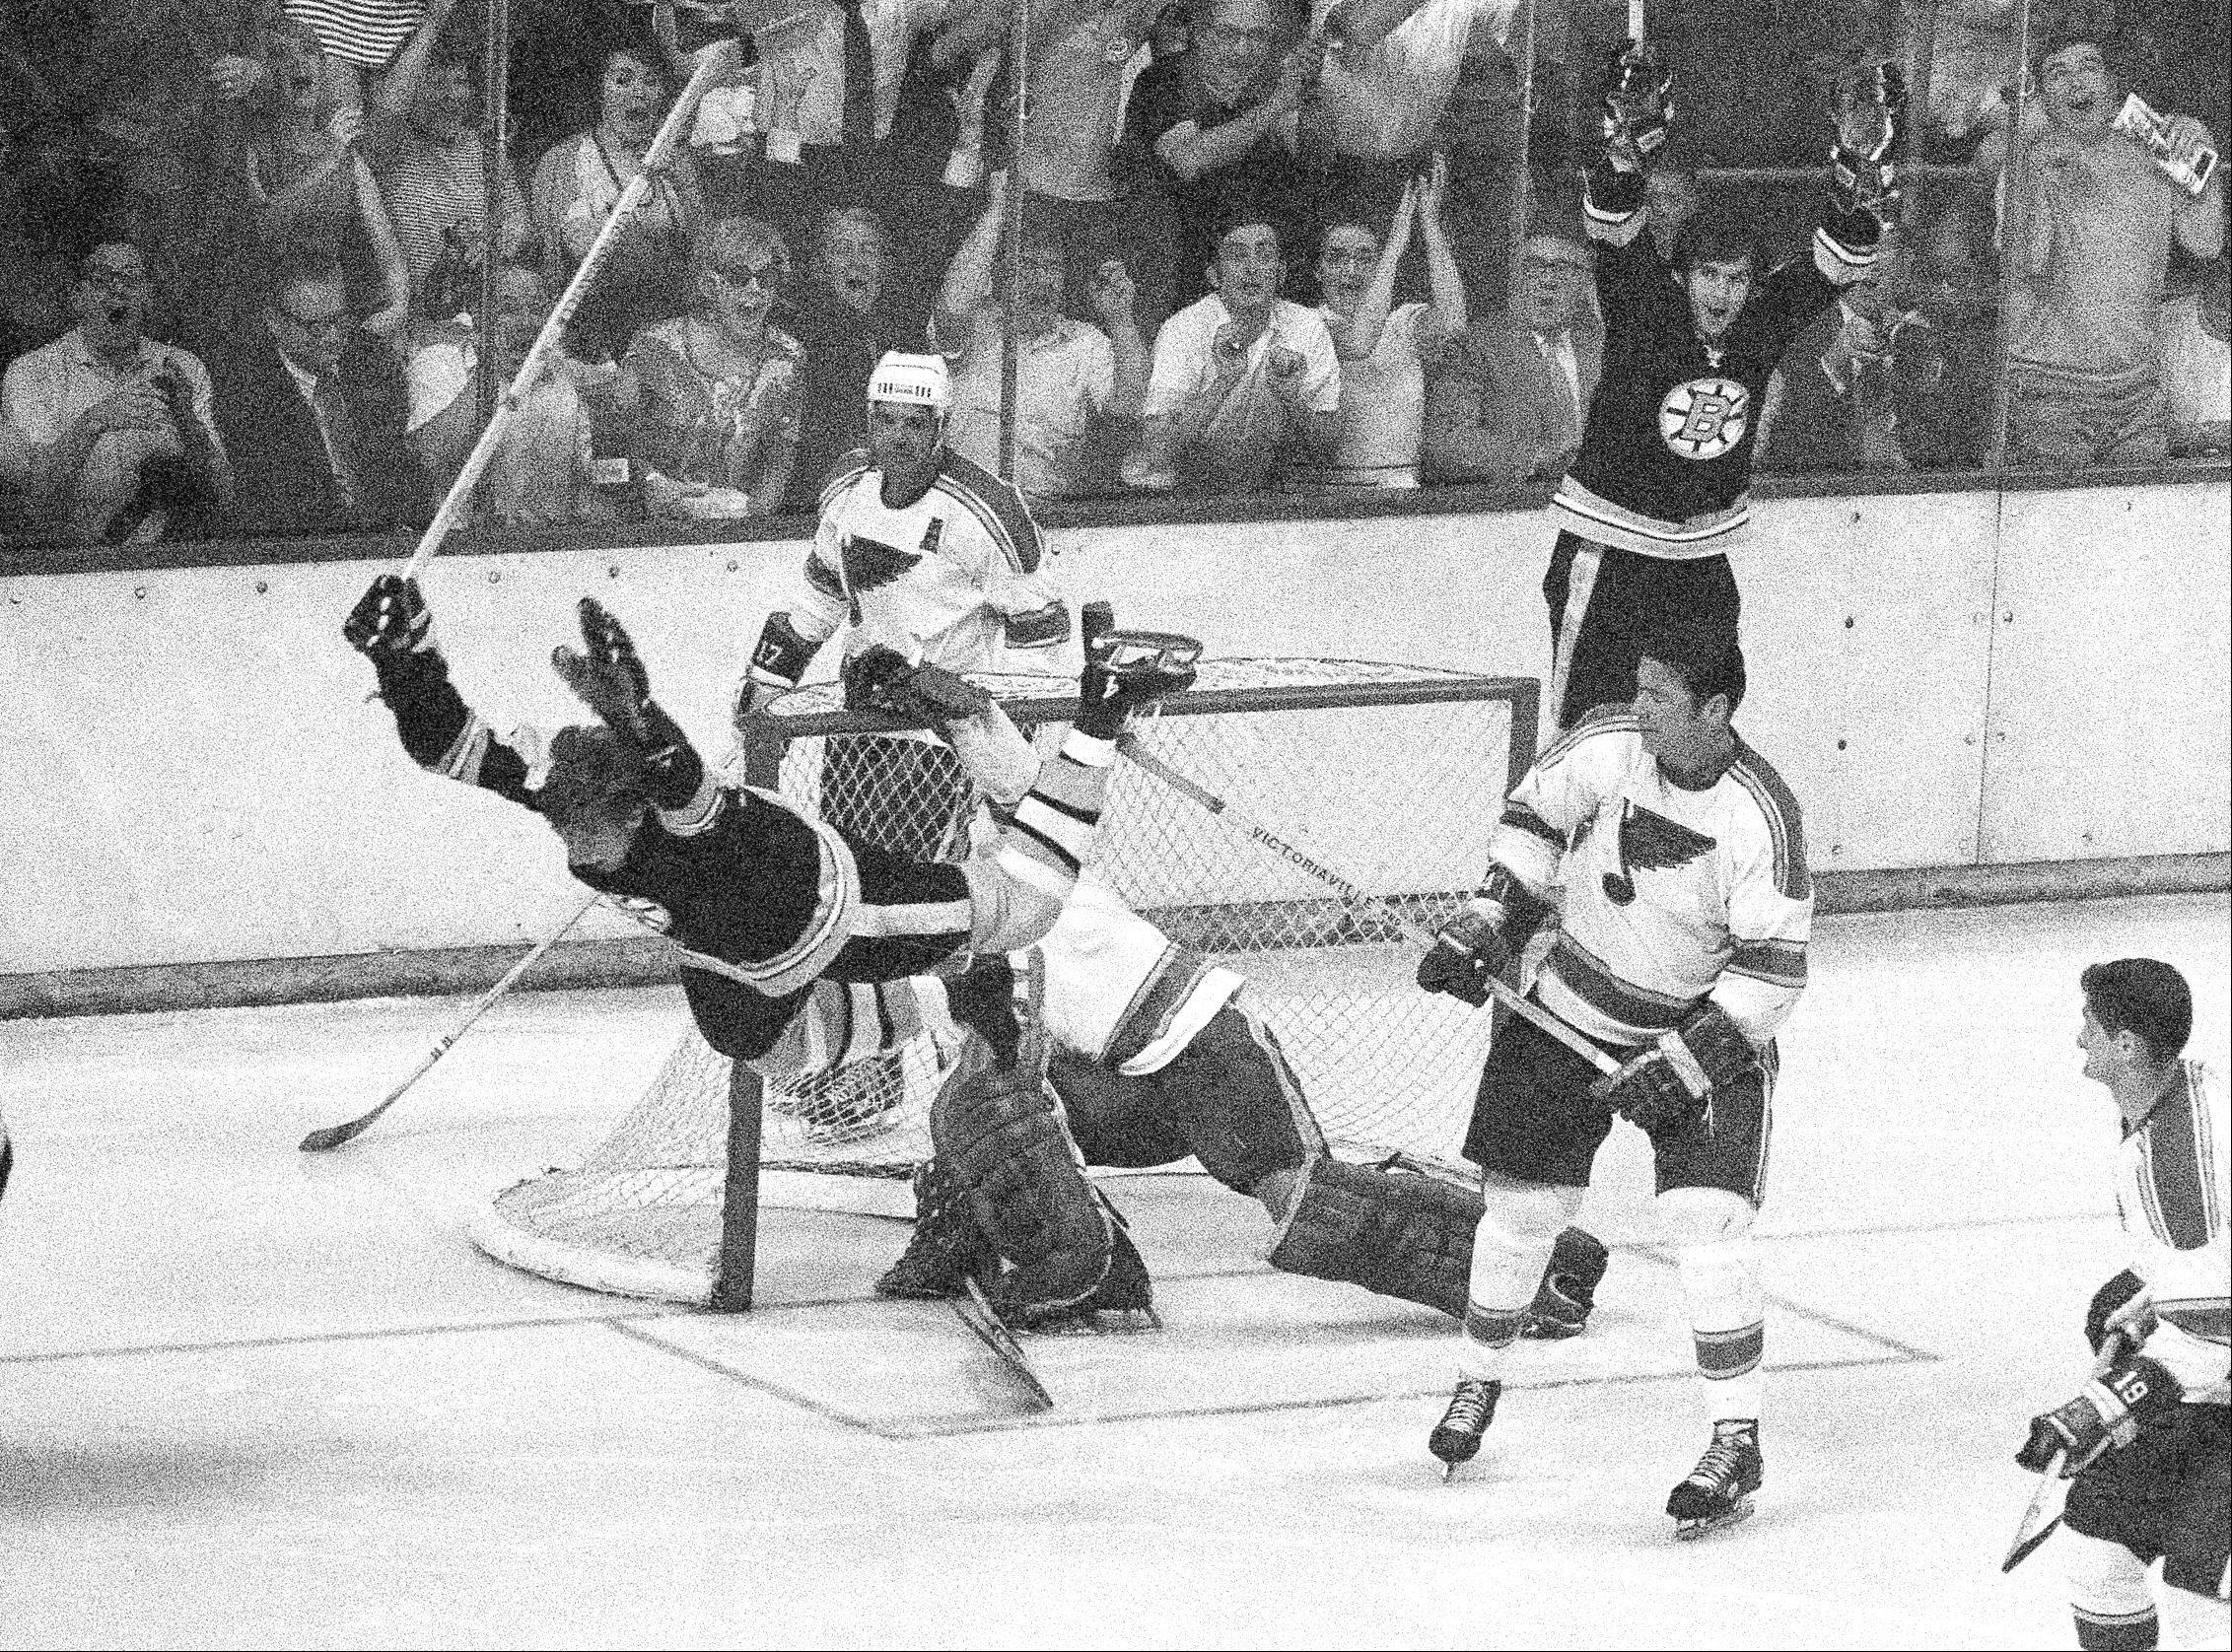 Bobby Orr flies through the air after scoring the winning goal against Blues goalie Glenn Hall in overtime of the Stanley Cup Final. The Bruins won 4-3 and swept the series in four games to capture the Stanley Cup for the first time in 29 years.